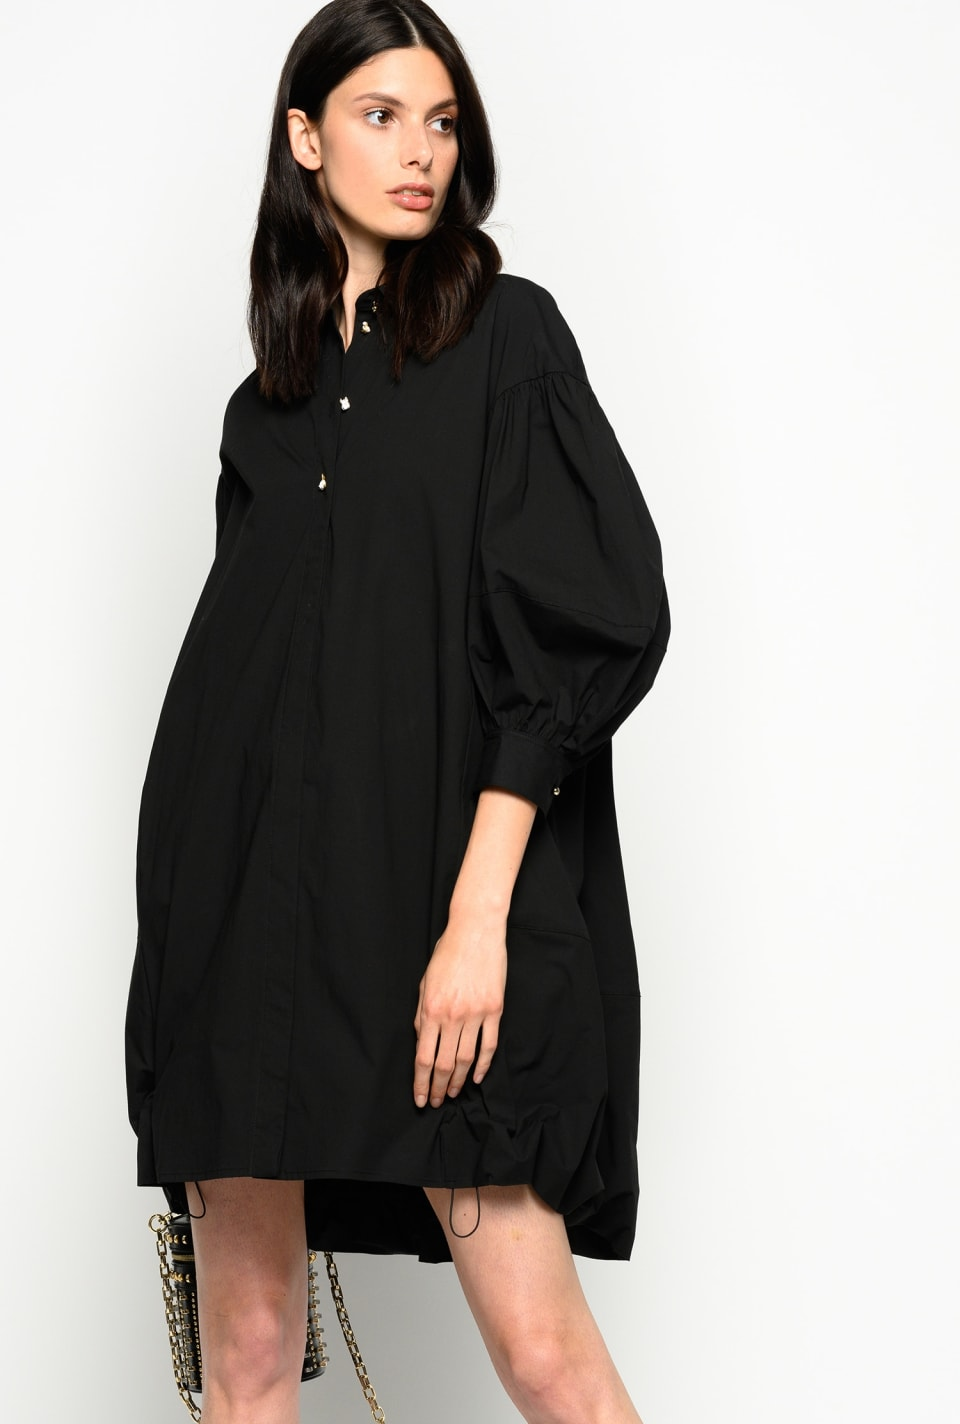 I Am Unique shirtdress